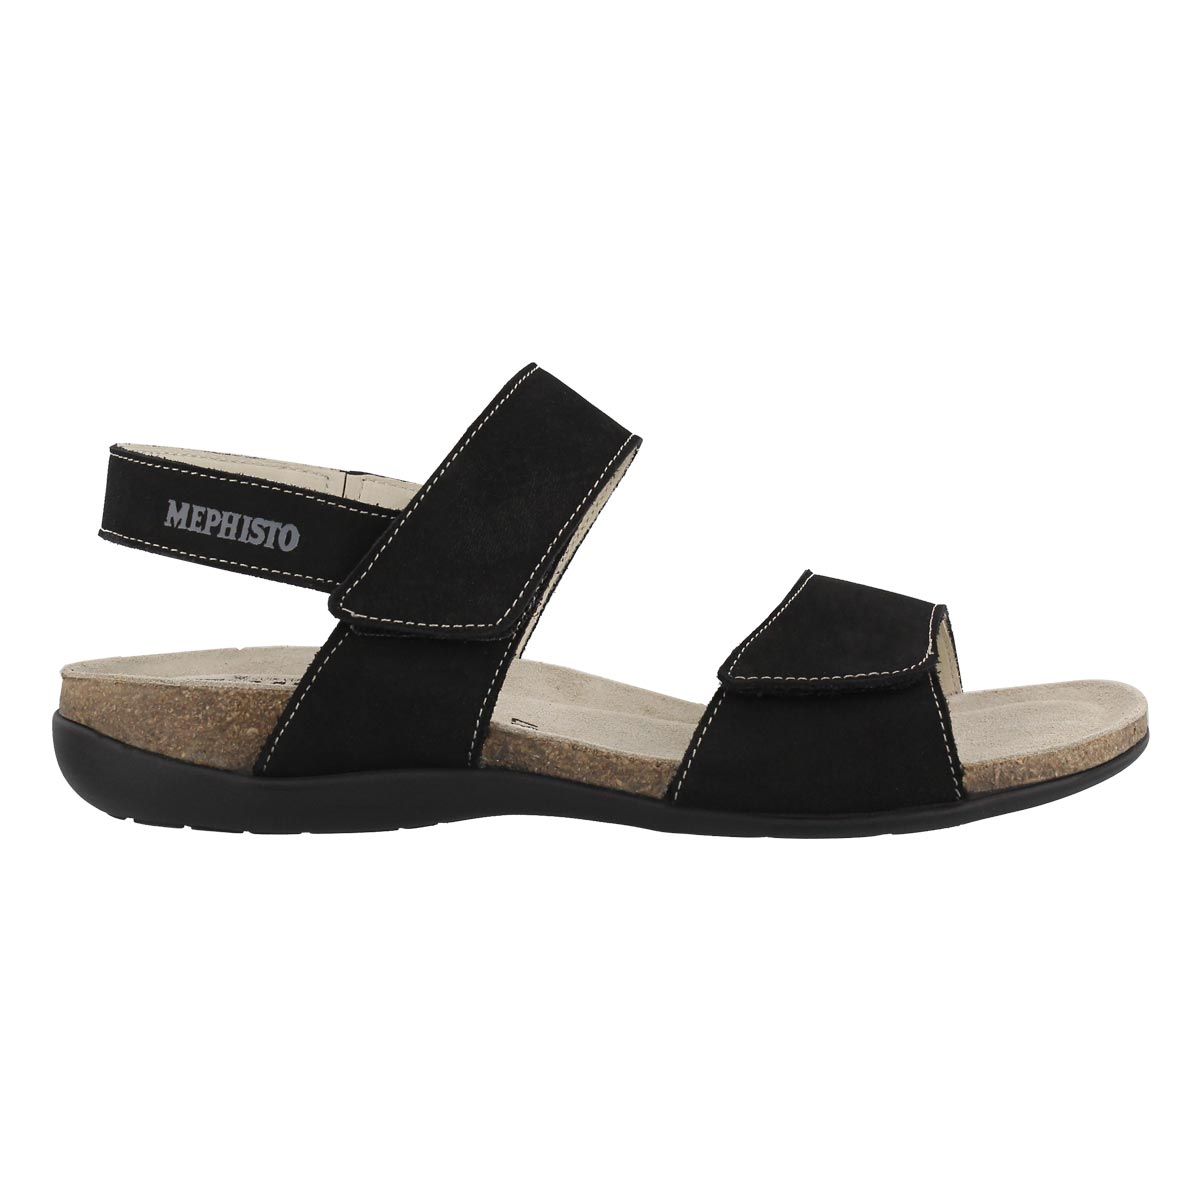 Lds Agave black cork footbed sandal